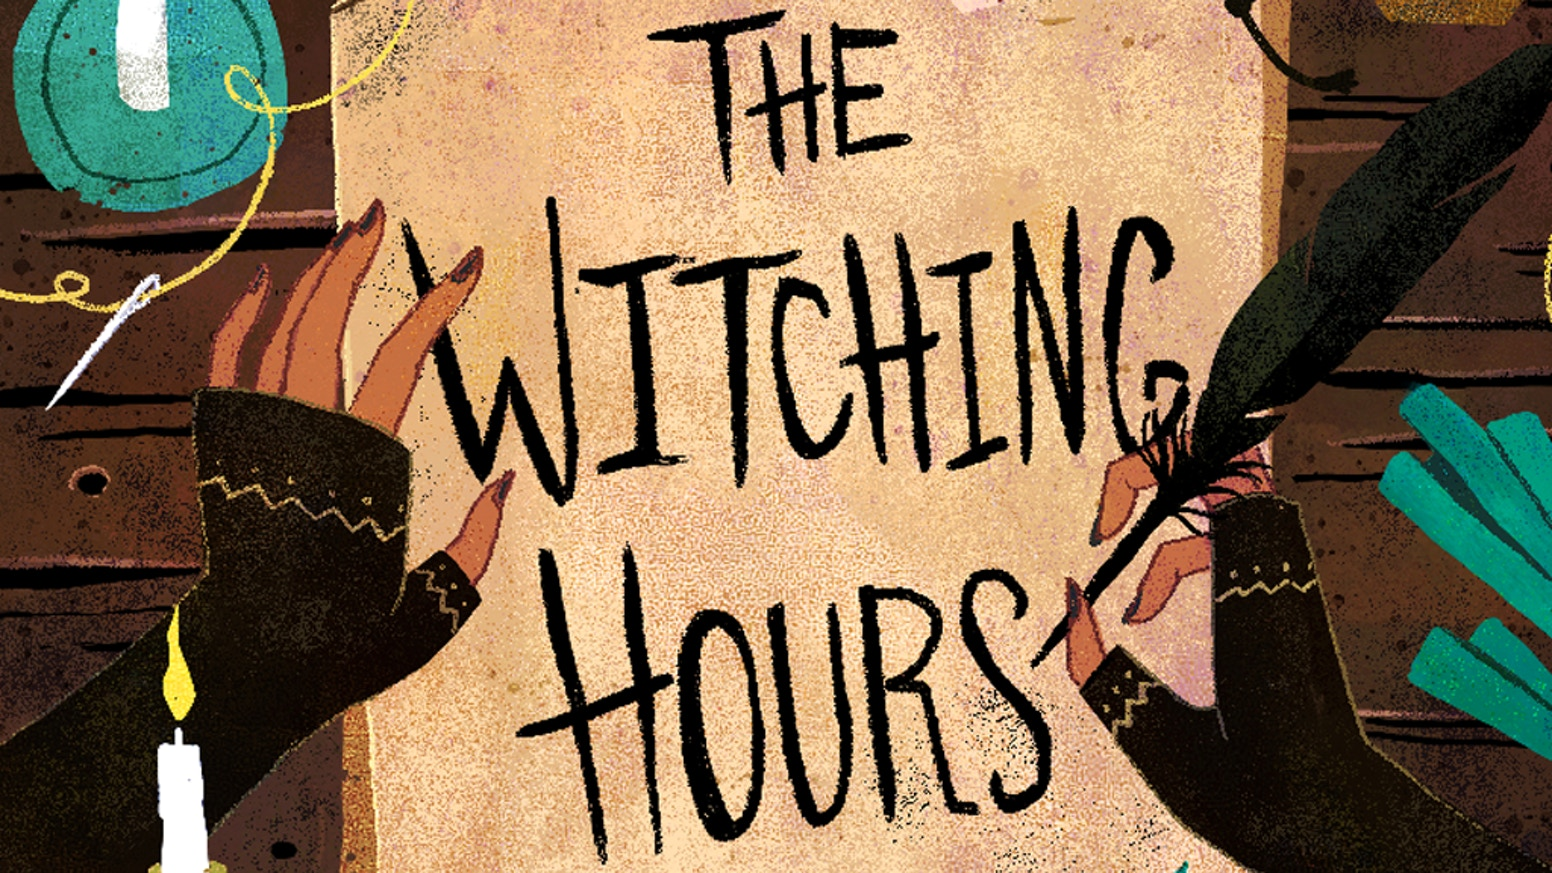 A graphic novel anthology about witches, written and illustrated by women and non-binary artists from B.C.